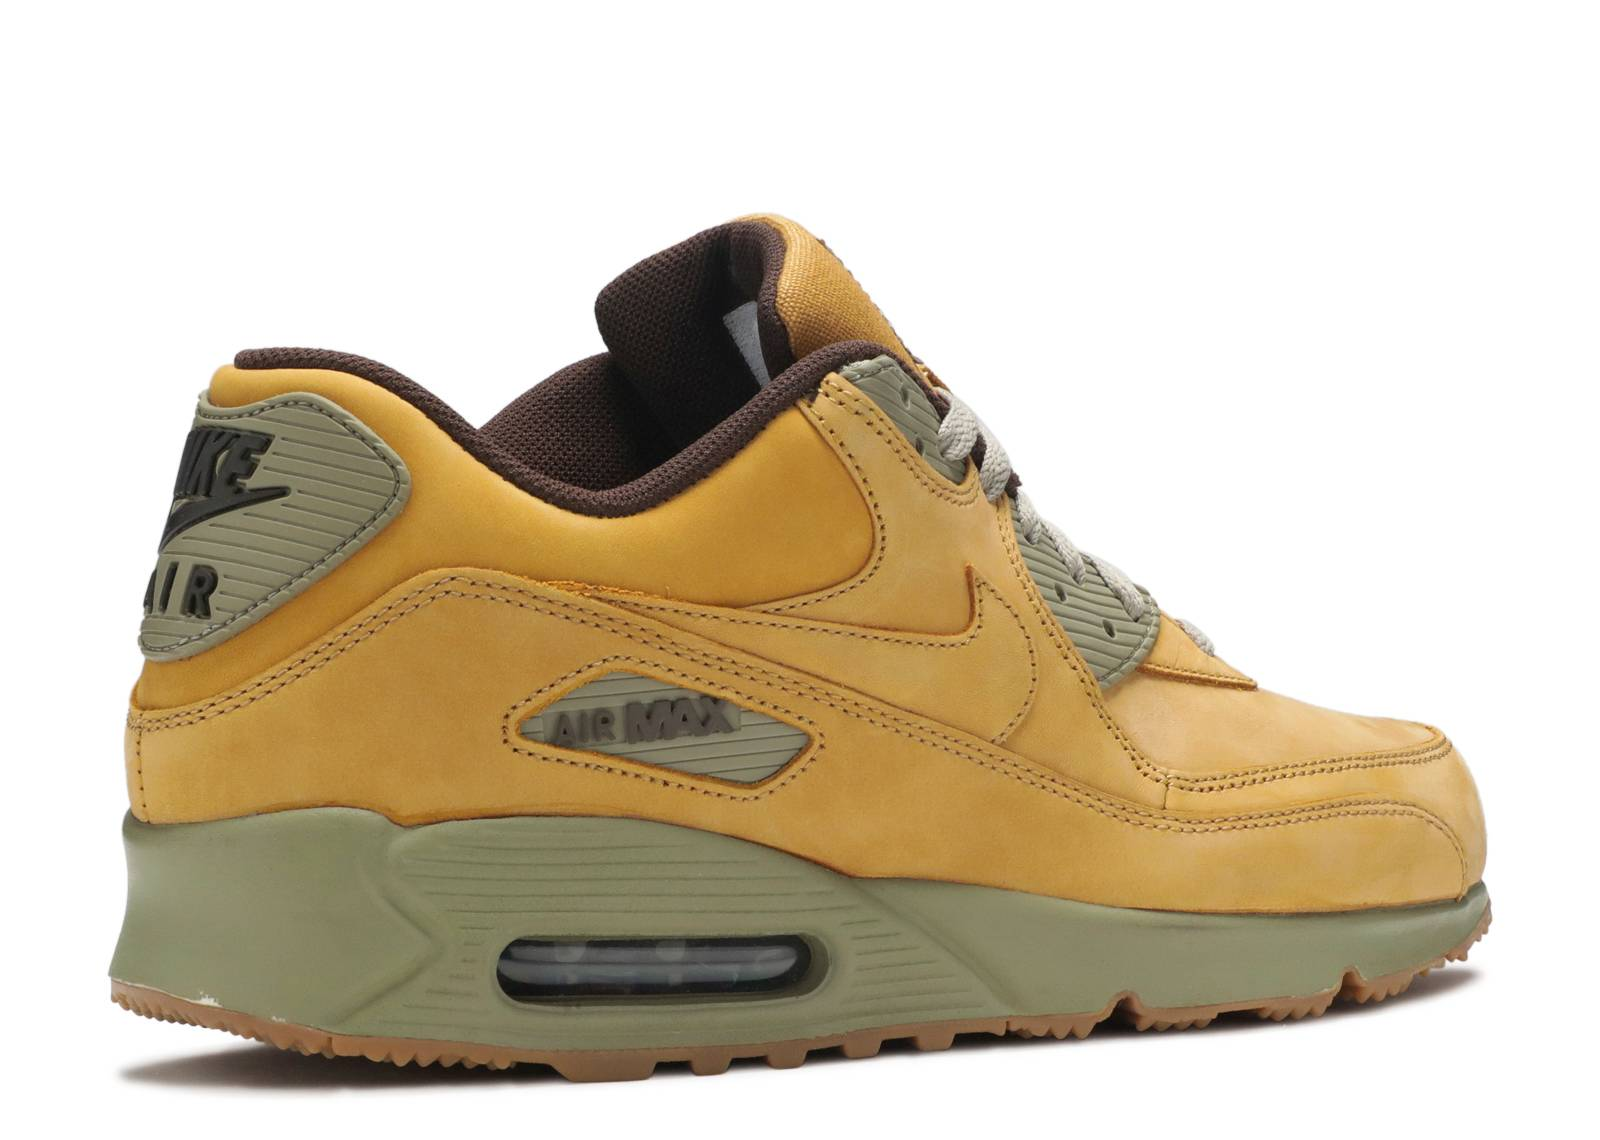 air max 90 winter prm wheat nike 683282 700 bronze. Black Bedroom Furniture Sets. Home Design Ideas